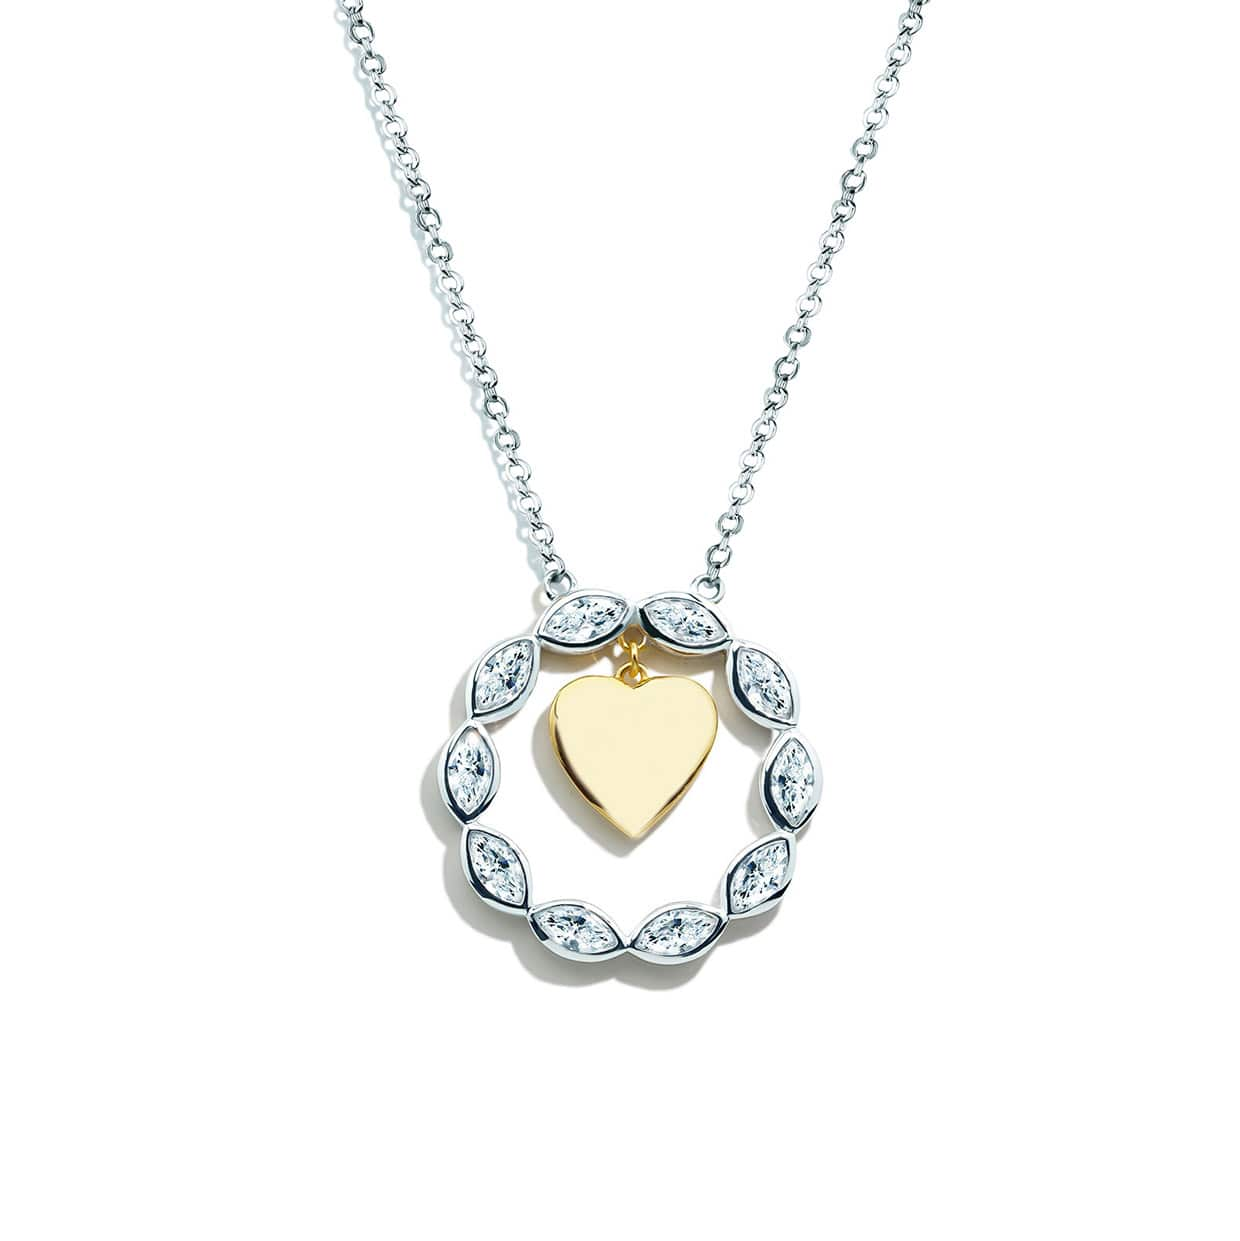 Loving Gold & Silver Moveable Heart Necklace